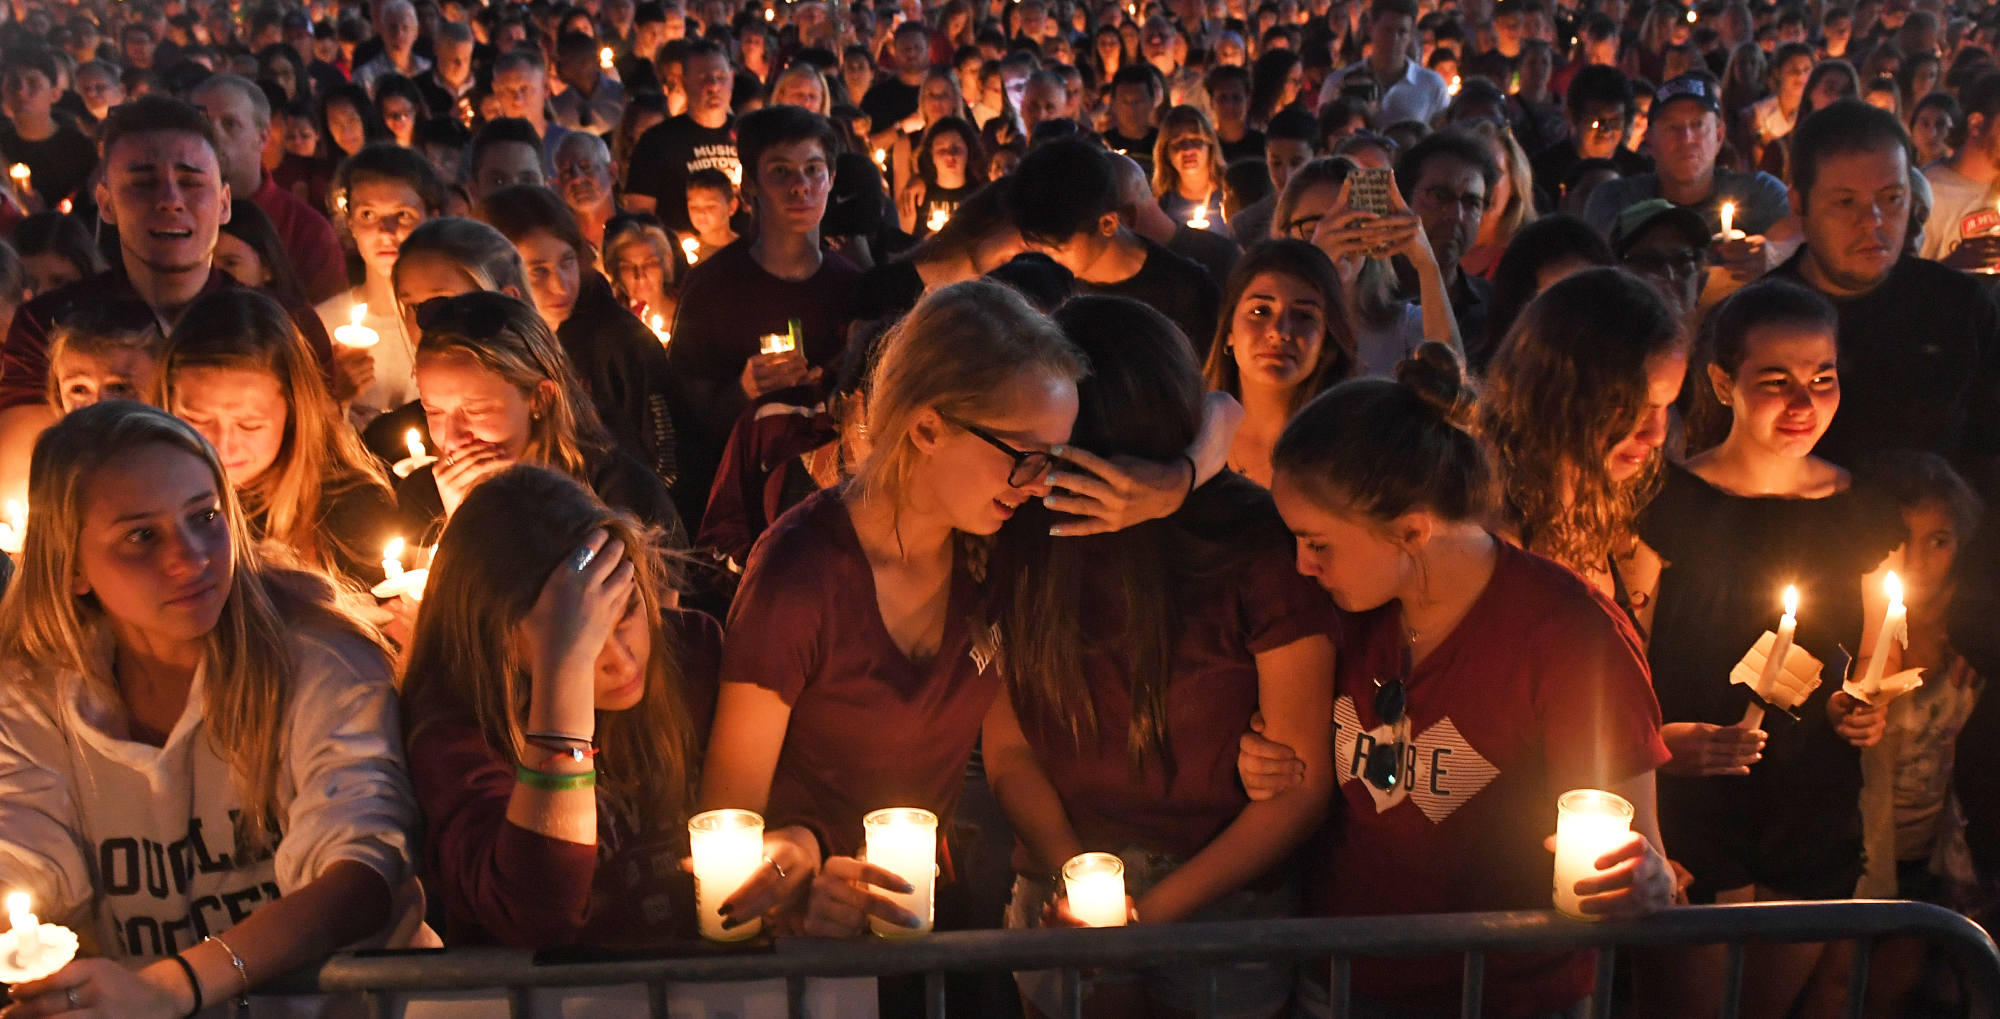 Mourners gather at a vigil for the victims of the mass shooting at Marjory Stoneman Douglas High School in Parkland, Fla., on Feb. 15, 2018.